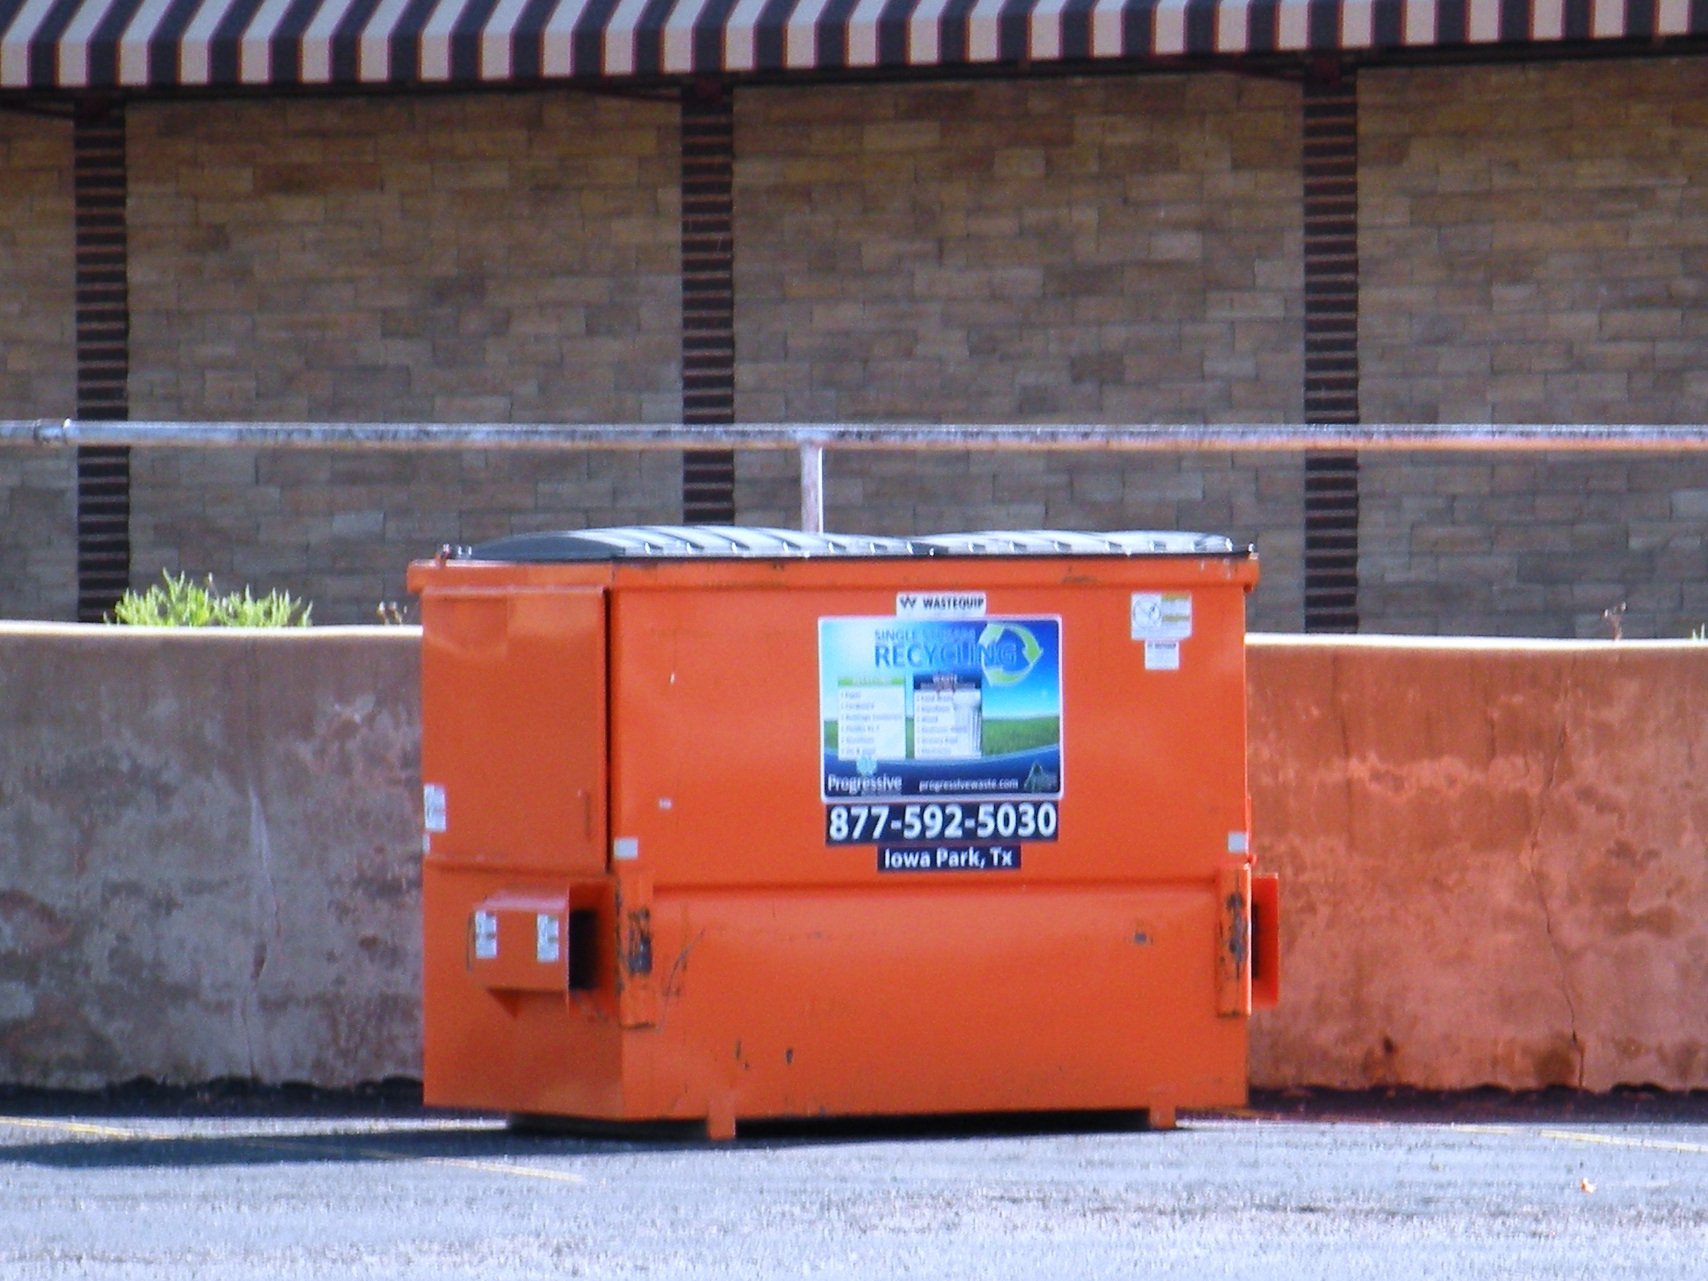 Recycling first united methodist church of wichita falls for Recycle motor oil containers